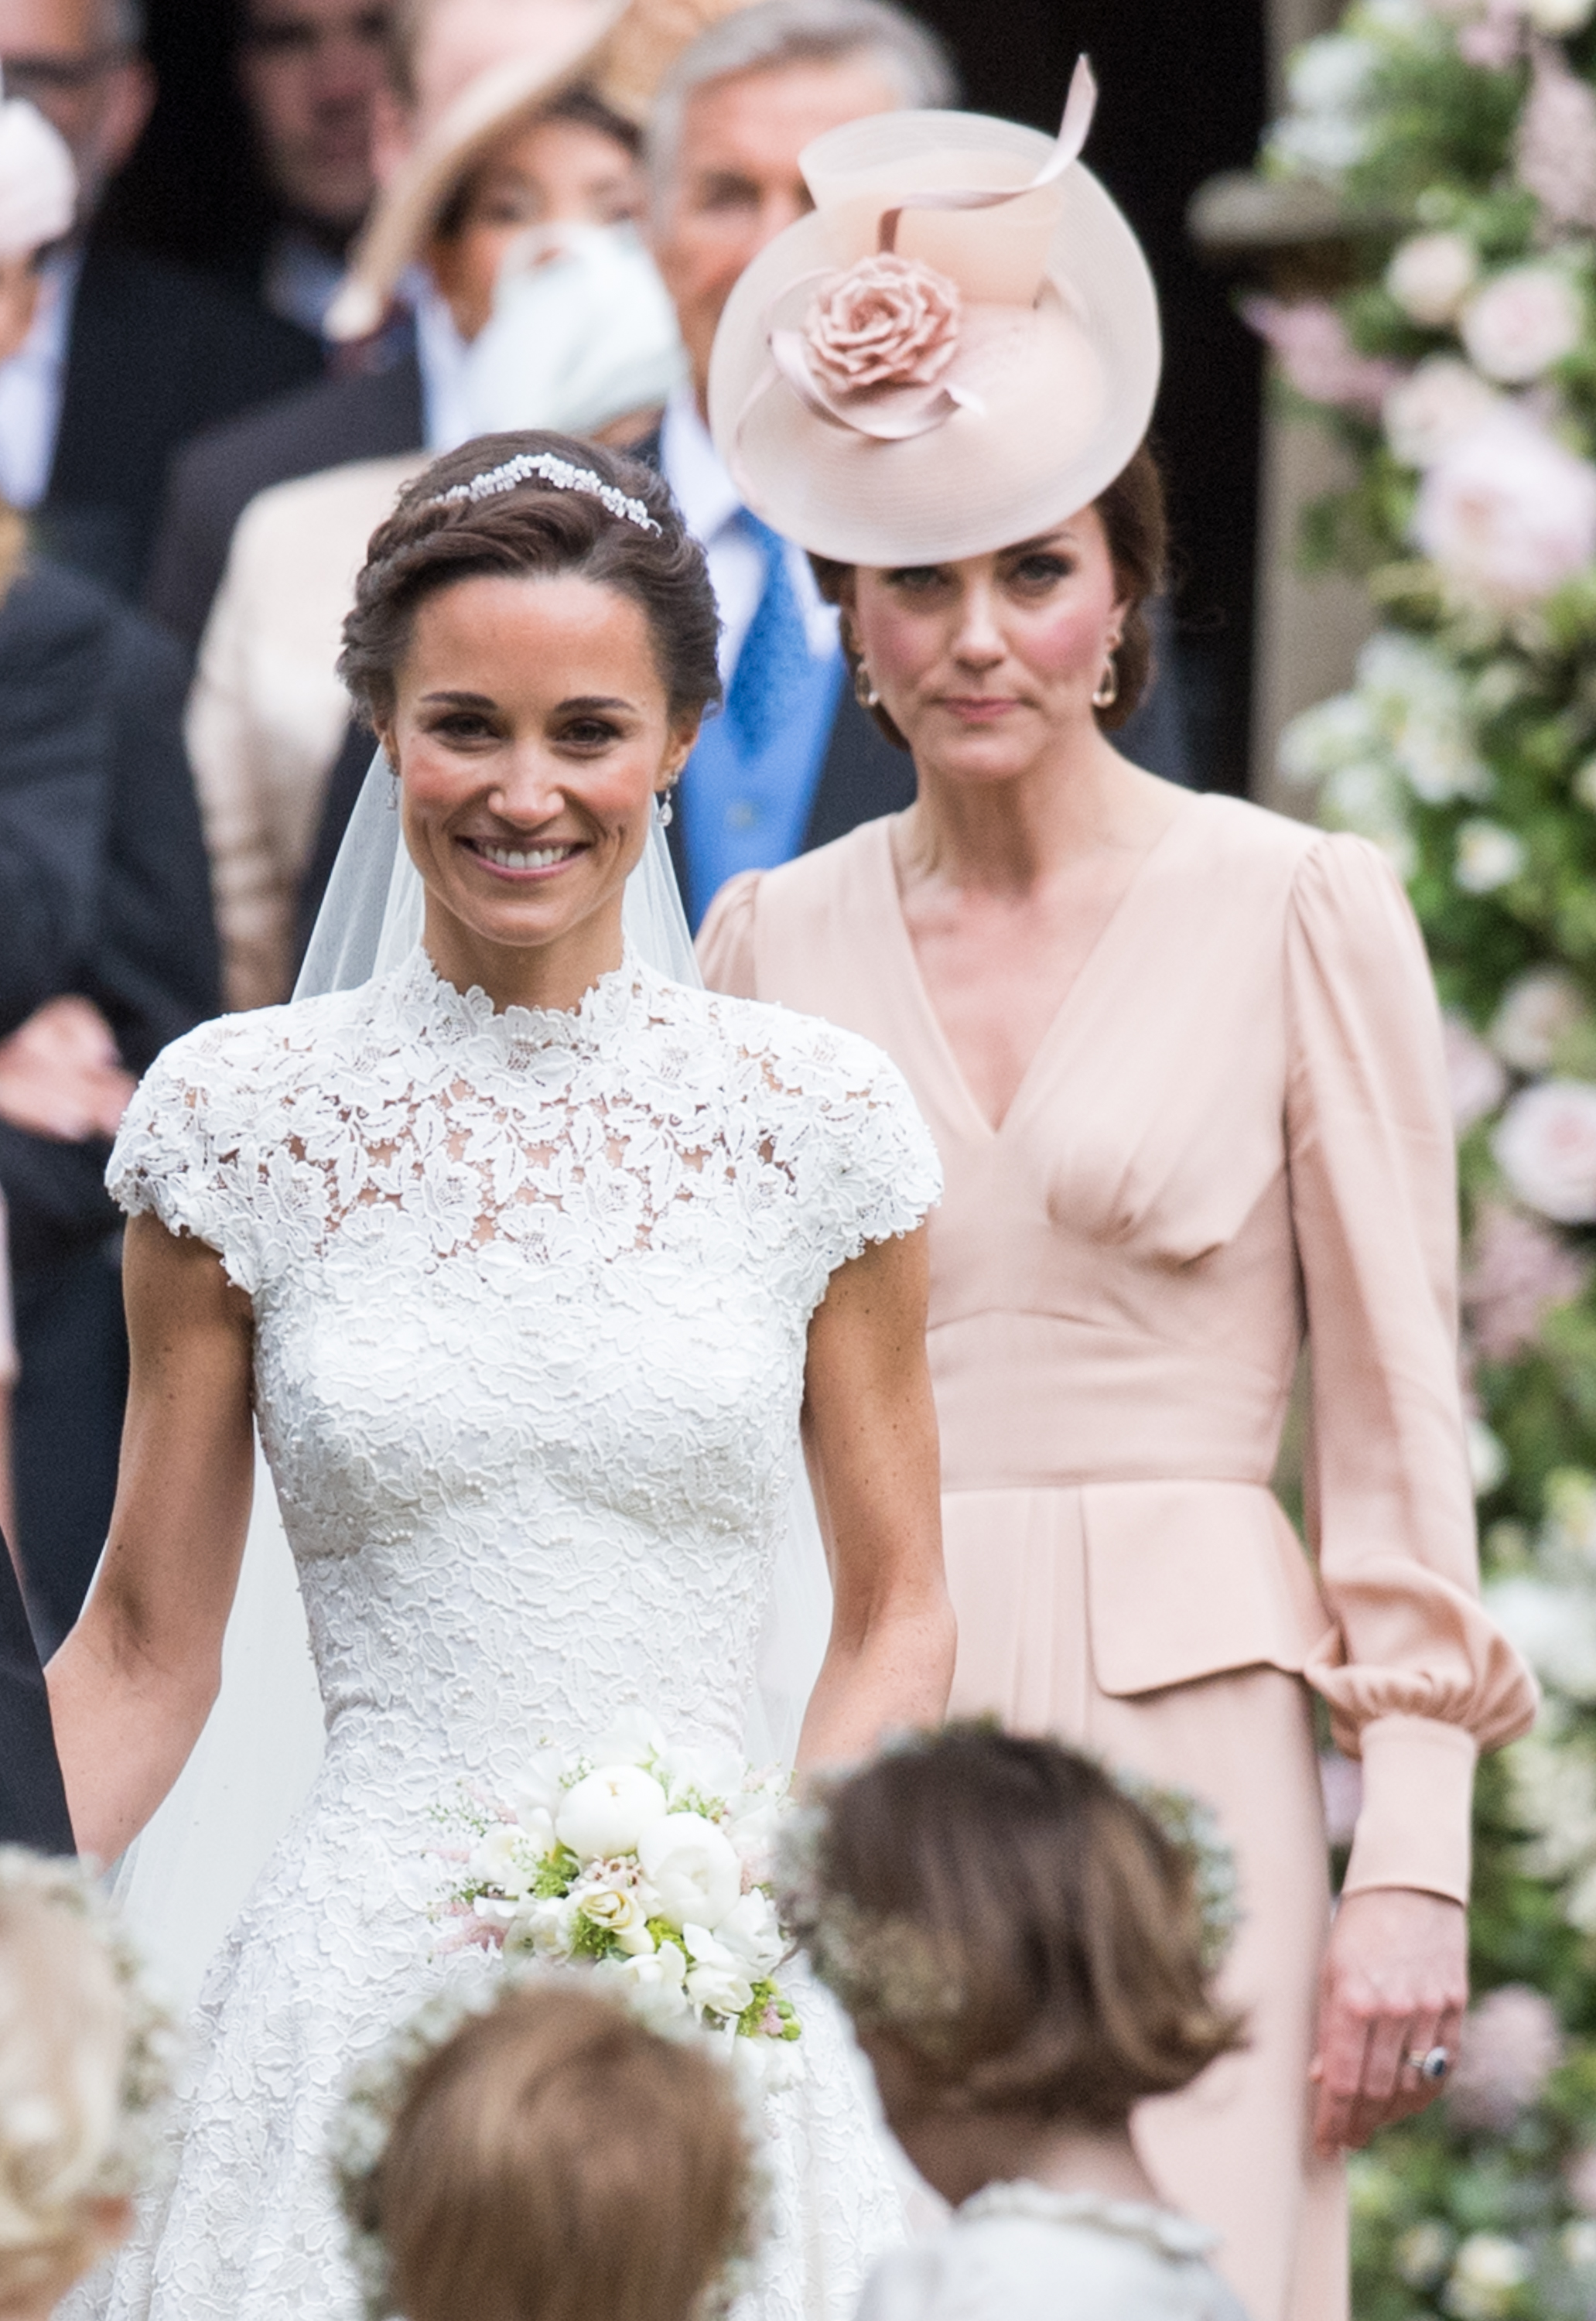 Kate Middleton Attends Pippa Middletons Wedding And She Has A